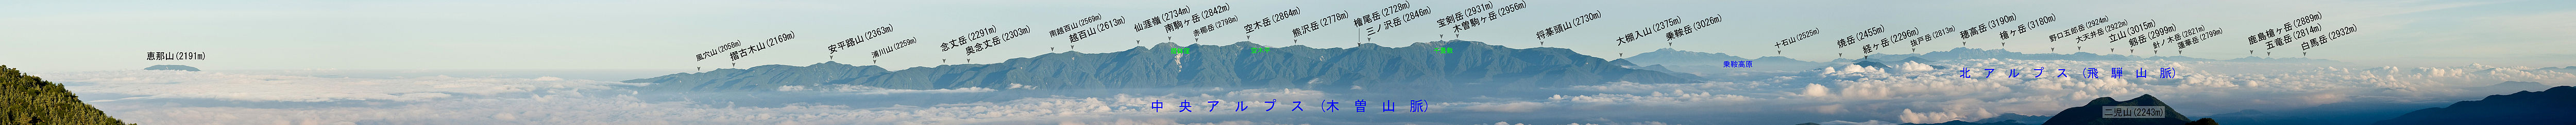 View from Mt.Sanpuku 01-3.jpg